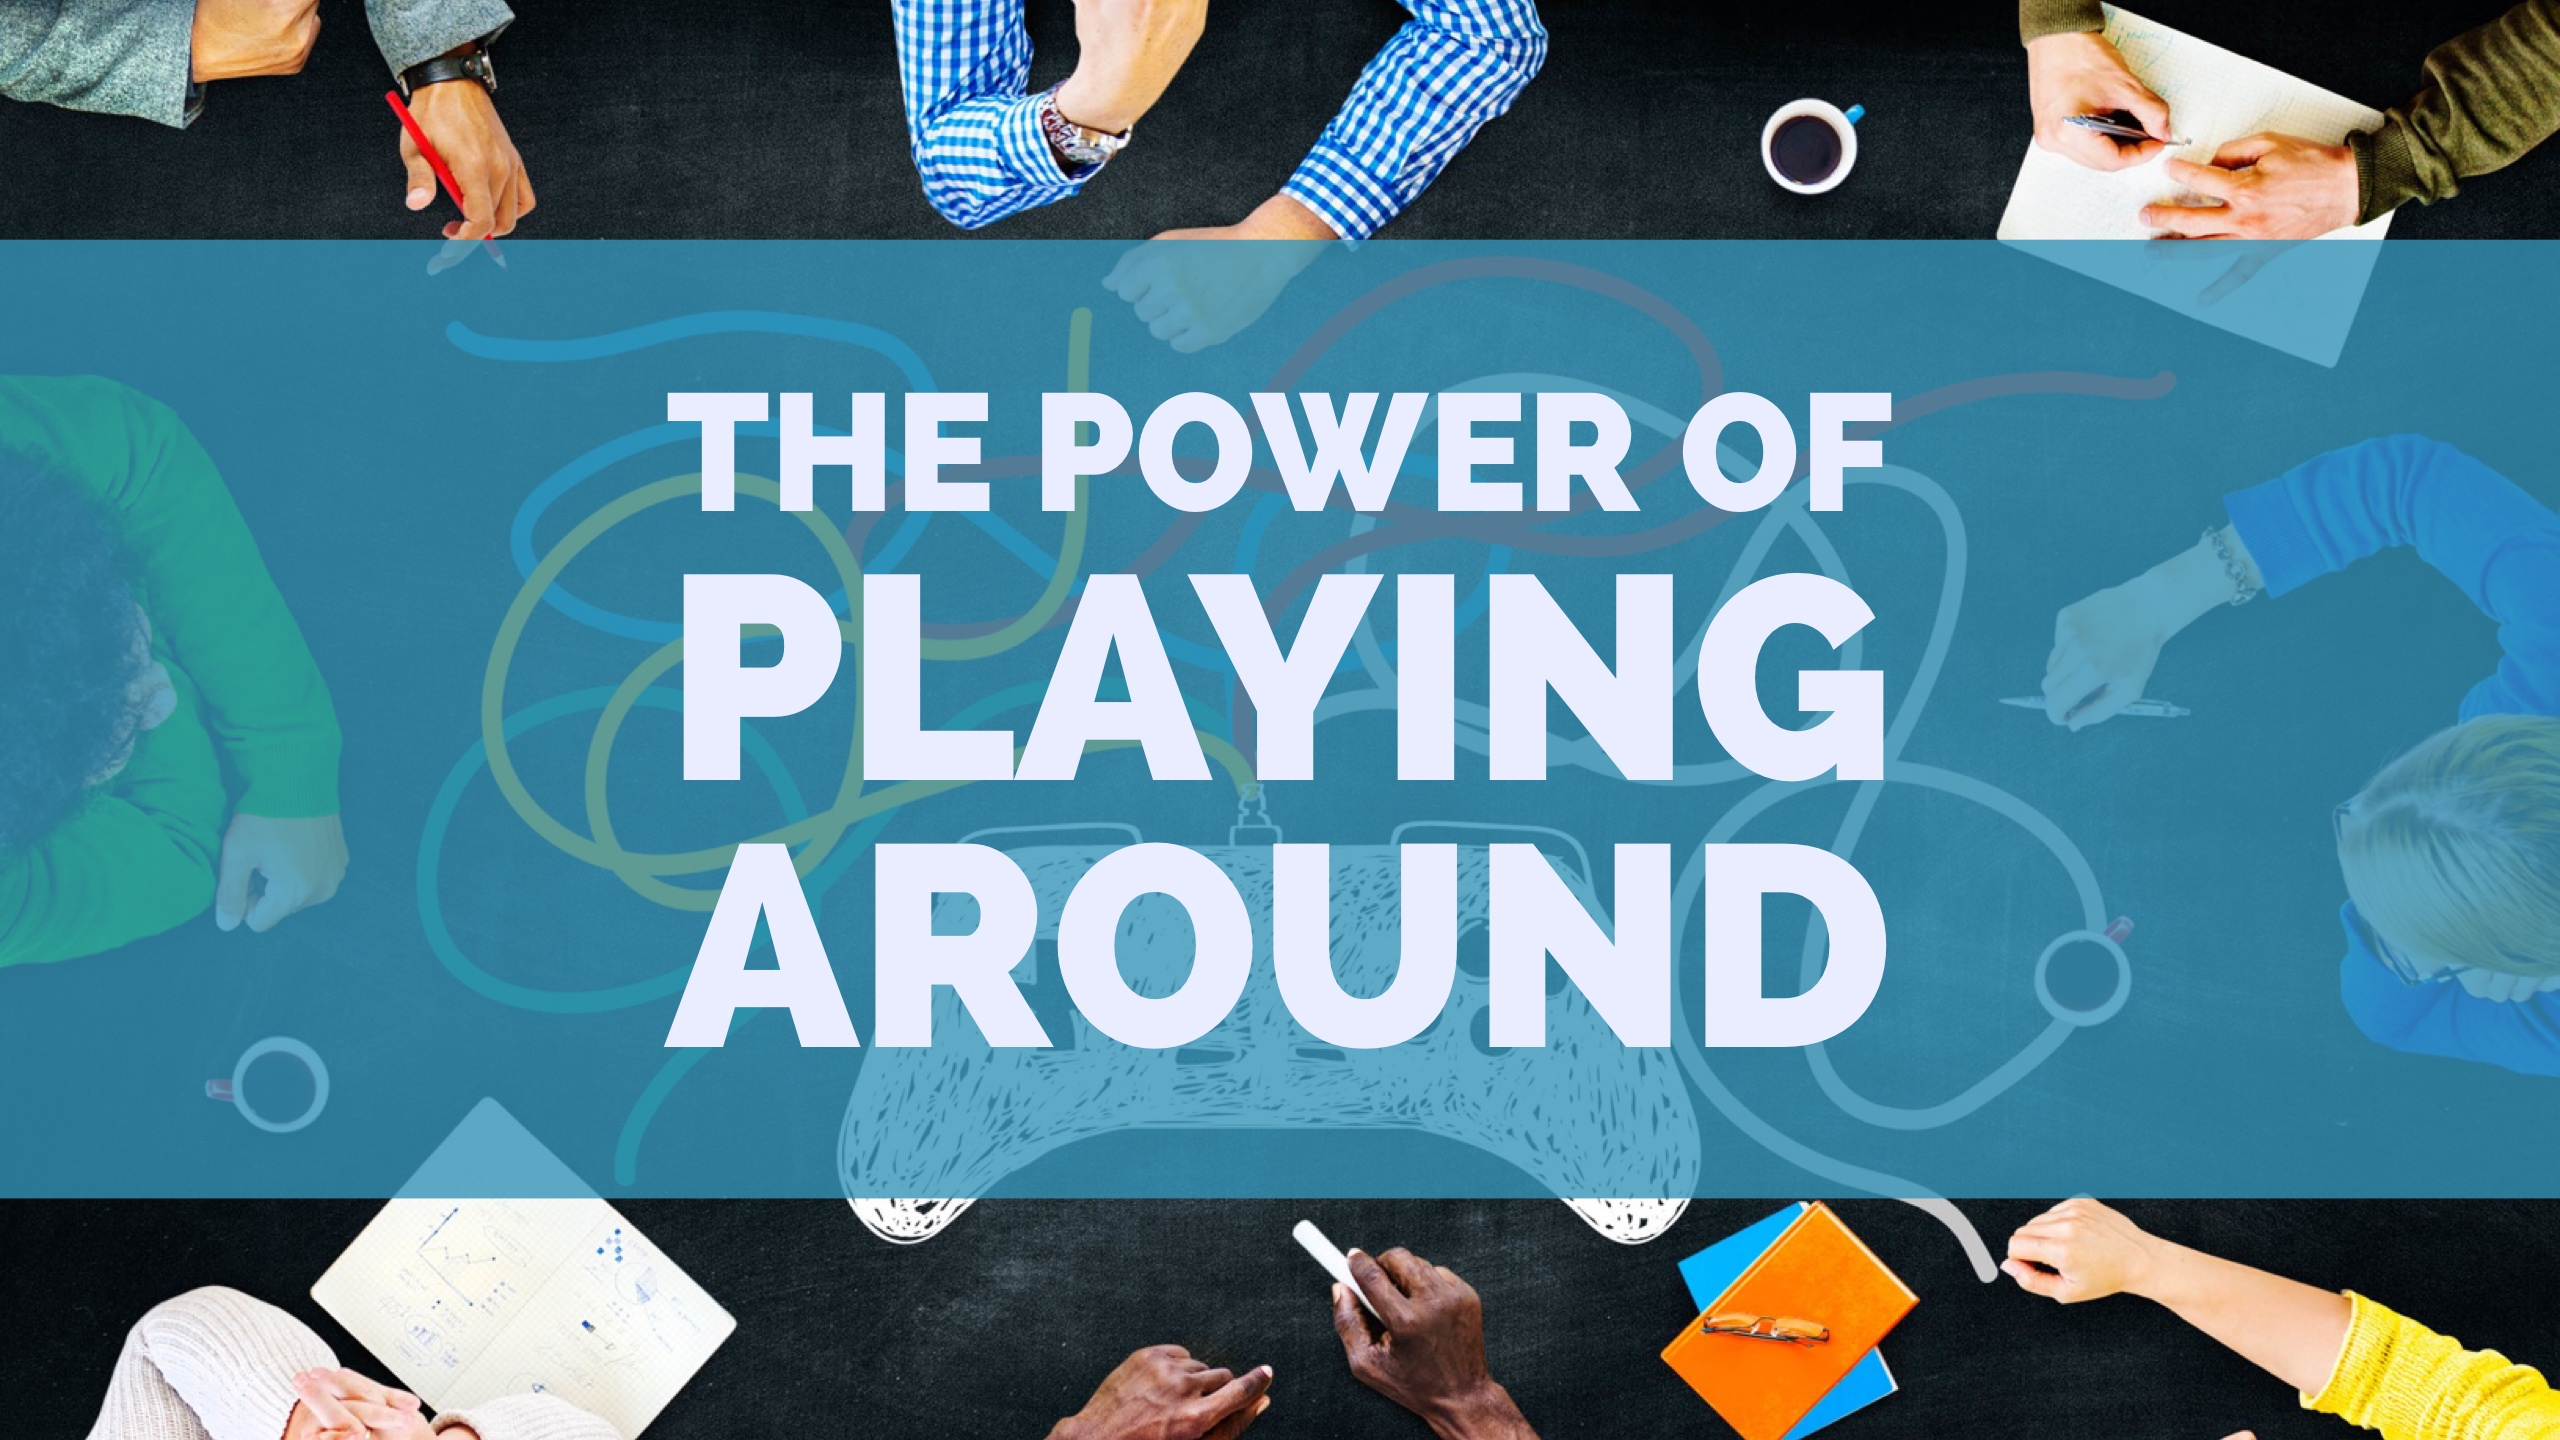 The Power of Playing Around